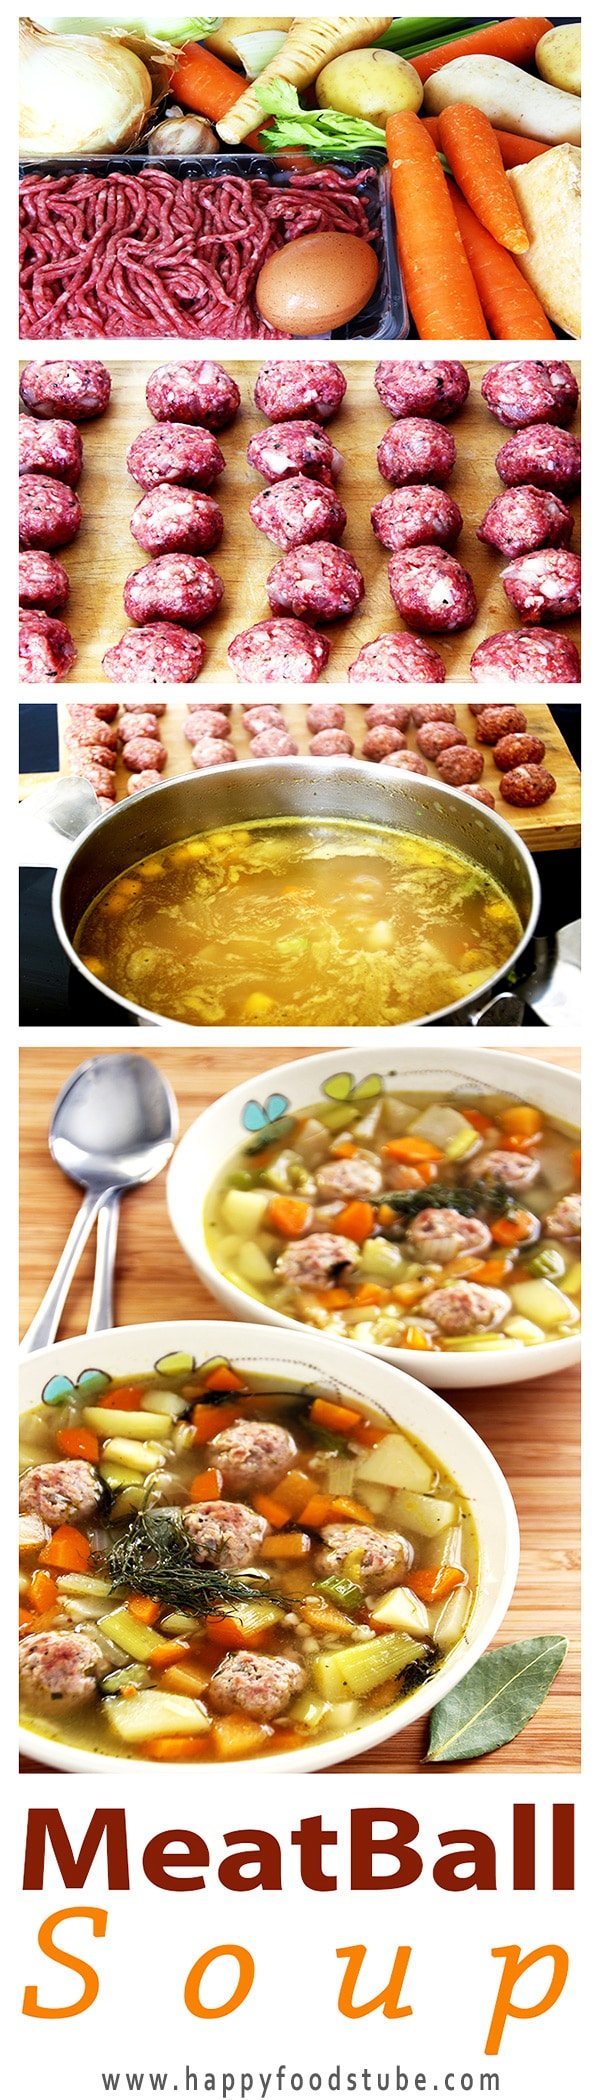 Estonian Meatball Soup is one of our favorite recipes. This soup is a perfect option during cold winter months. Quick and easy